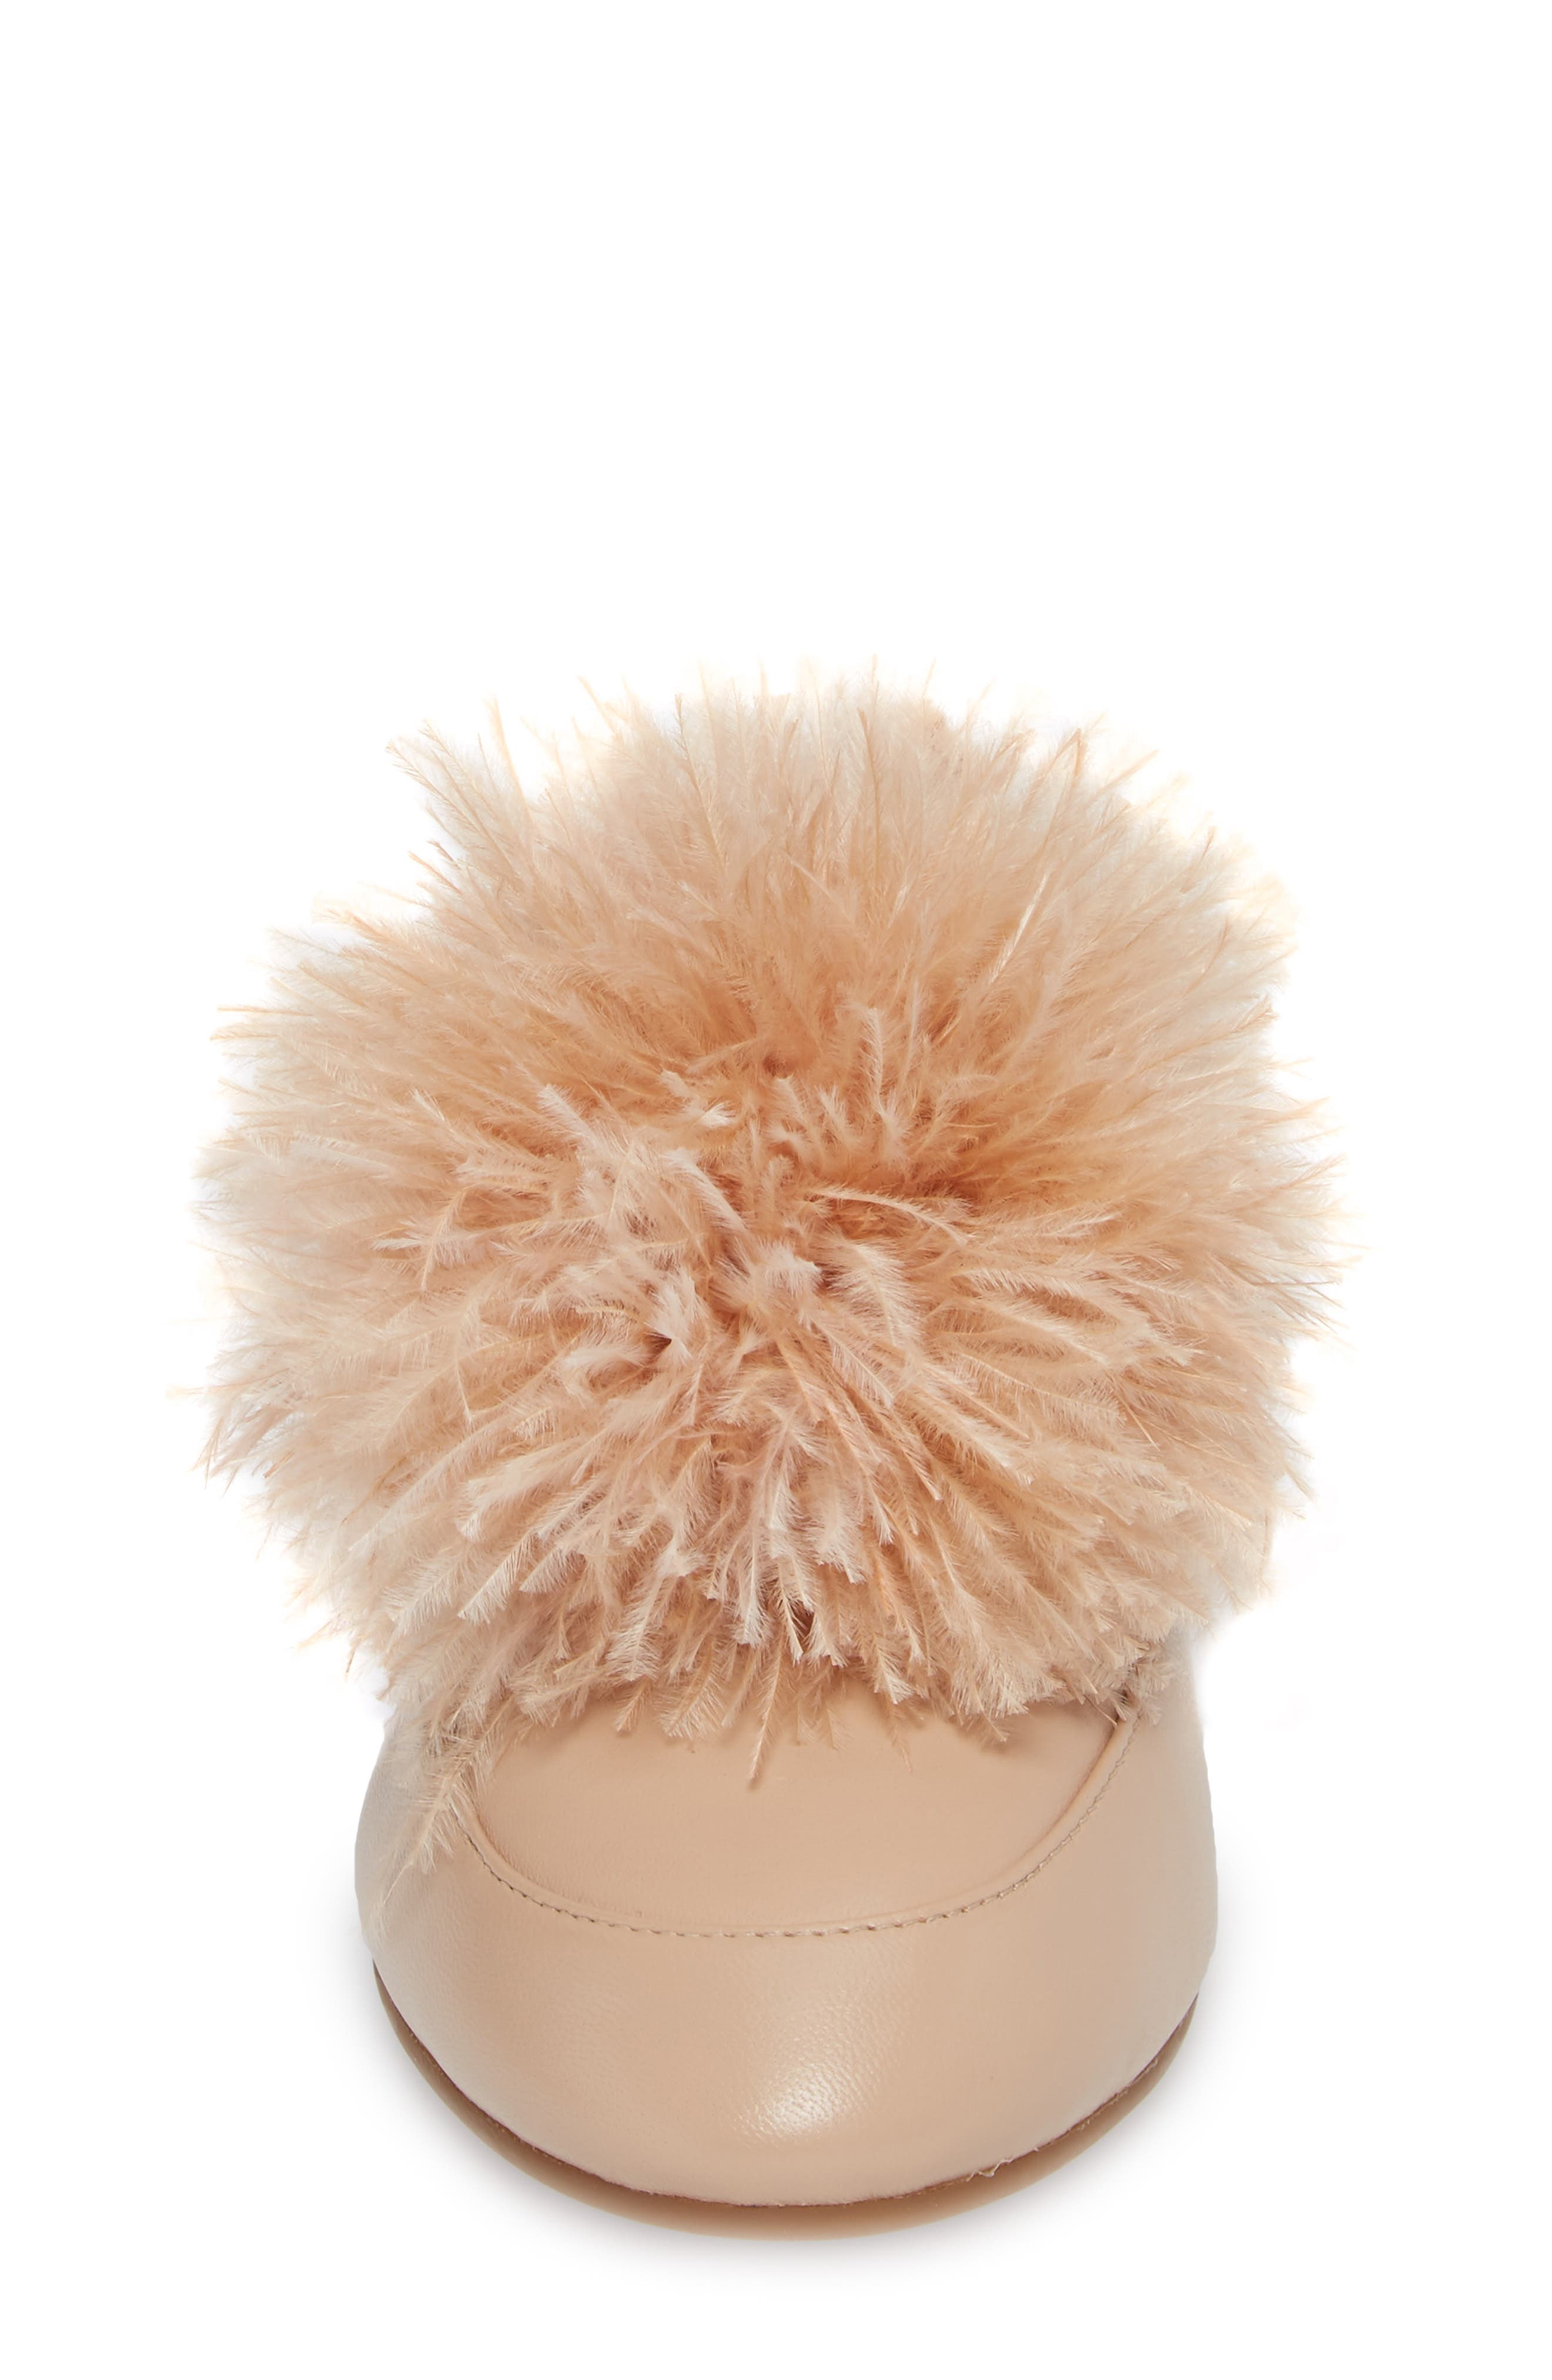 Fara Feather Pom Loafer,                             Alternate thumbnail 4, color,                             Oyster Nappa Leather